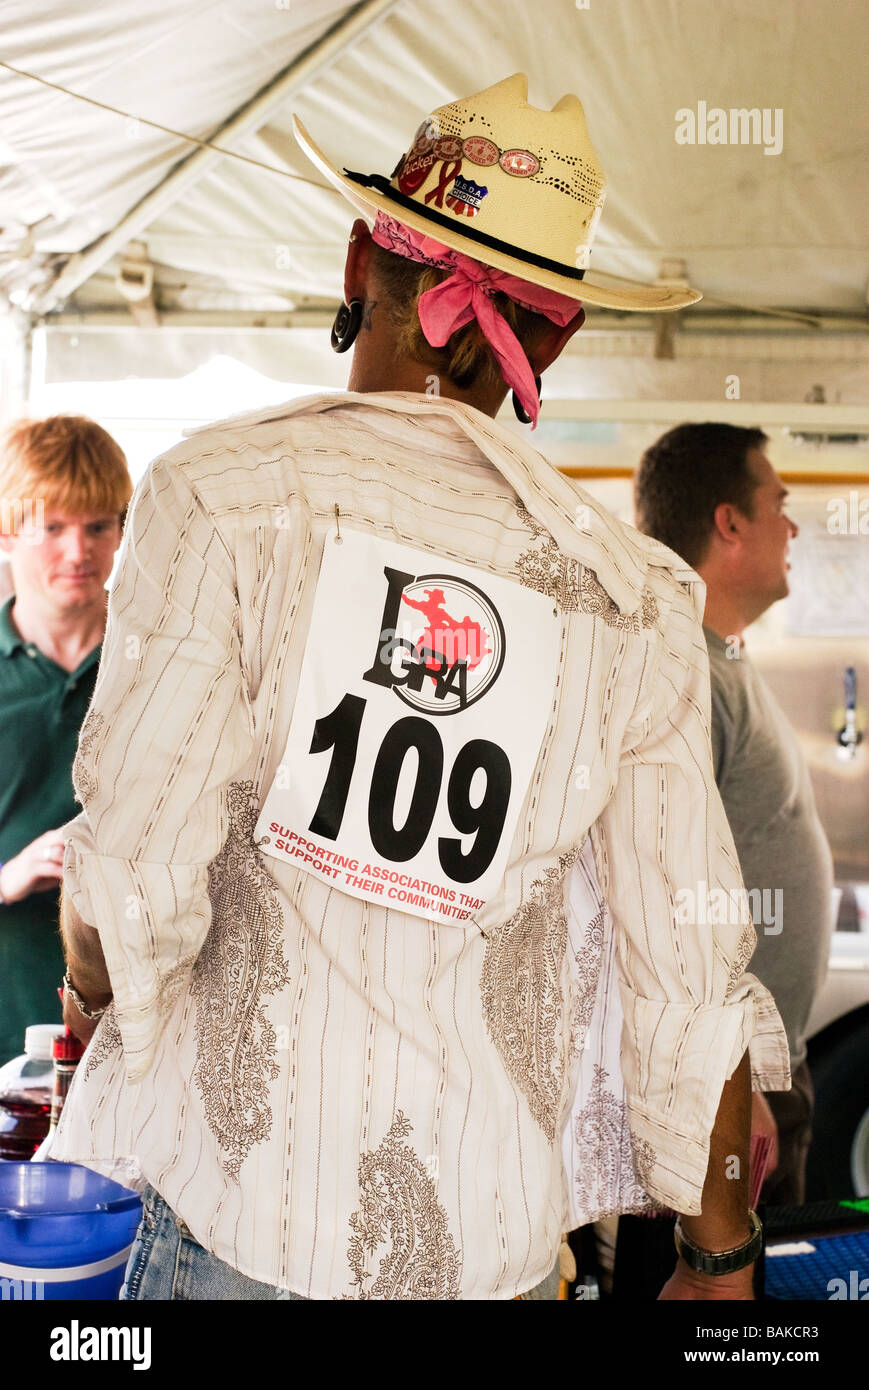 Caucasian male competitor wearing his number tag at the Windy City Rodeo a gay rodeo held annually near Chicago - Stock Image